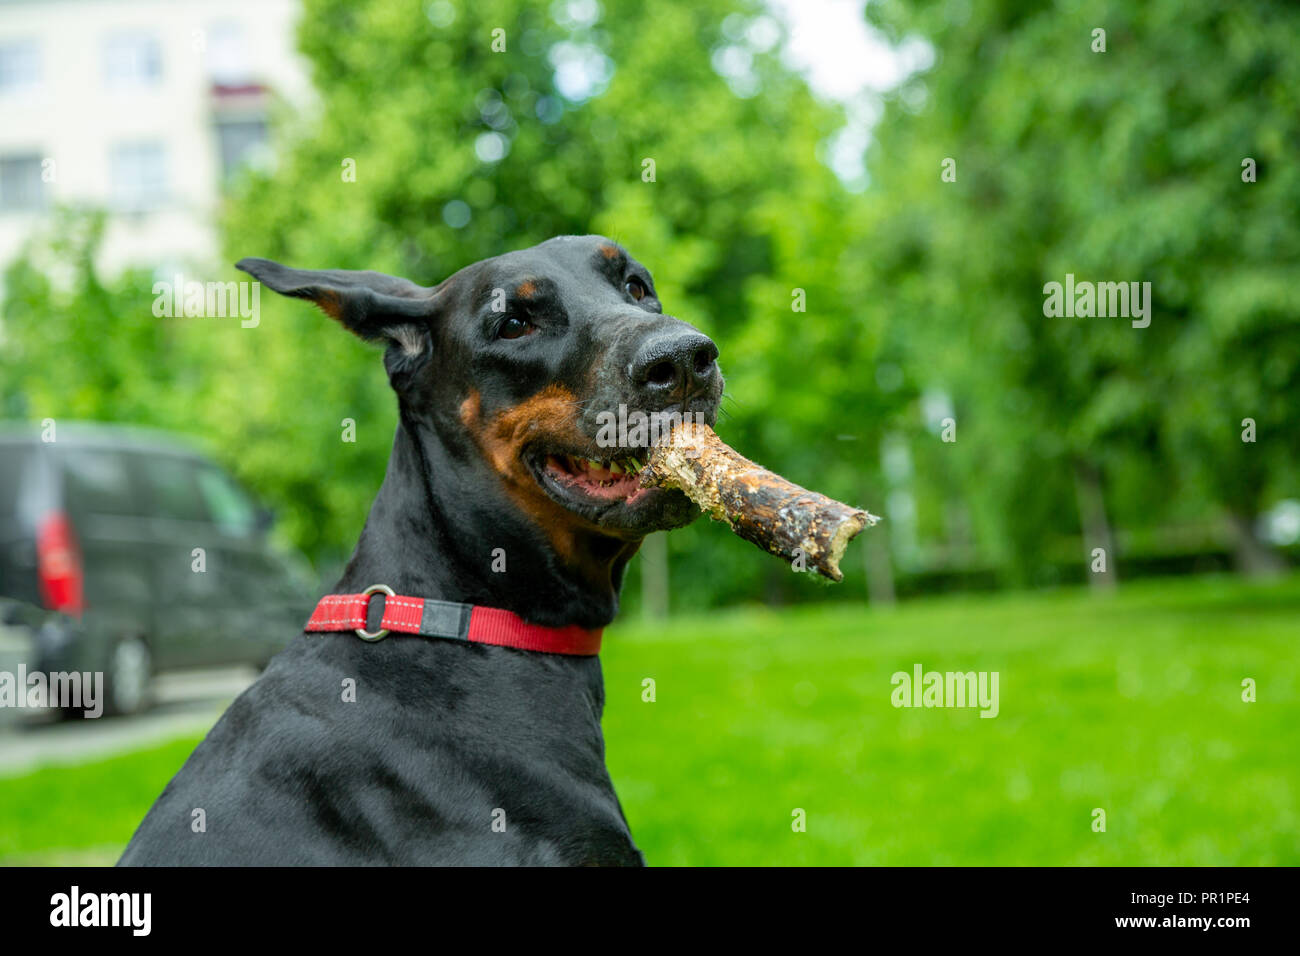 sits on the grass with a stick in his mouth - Stock Image